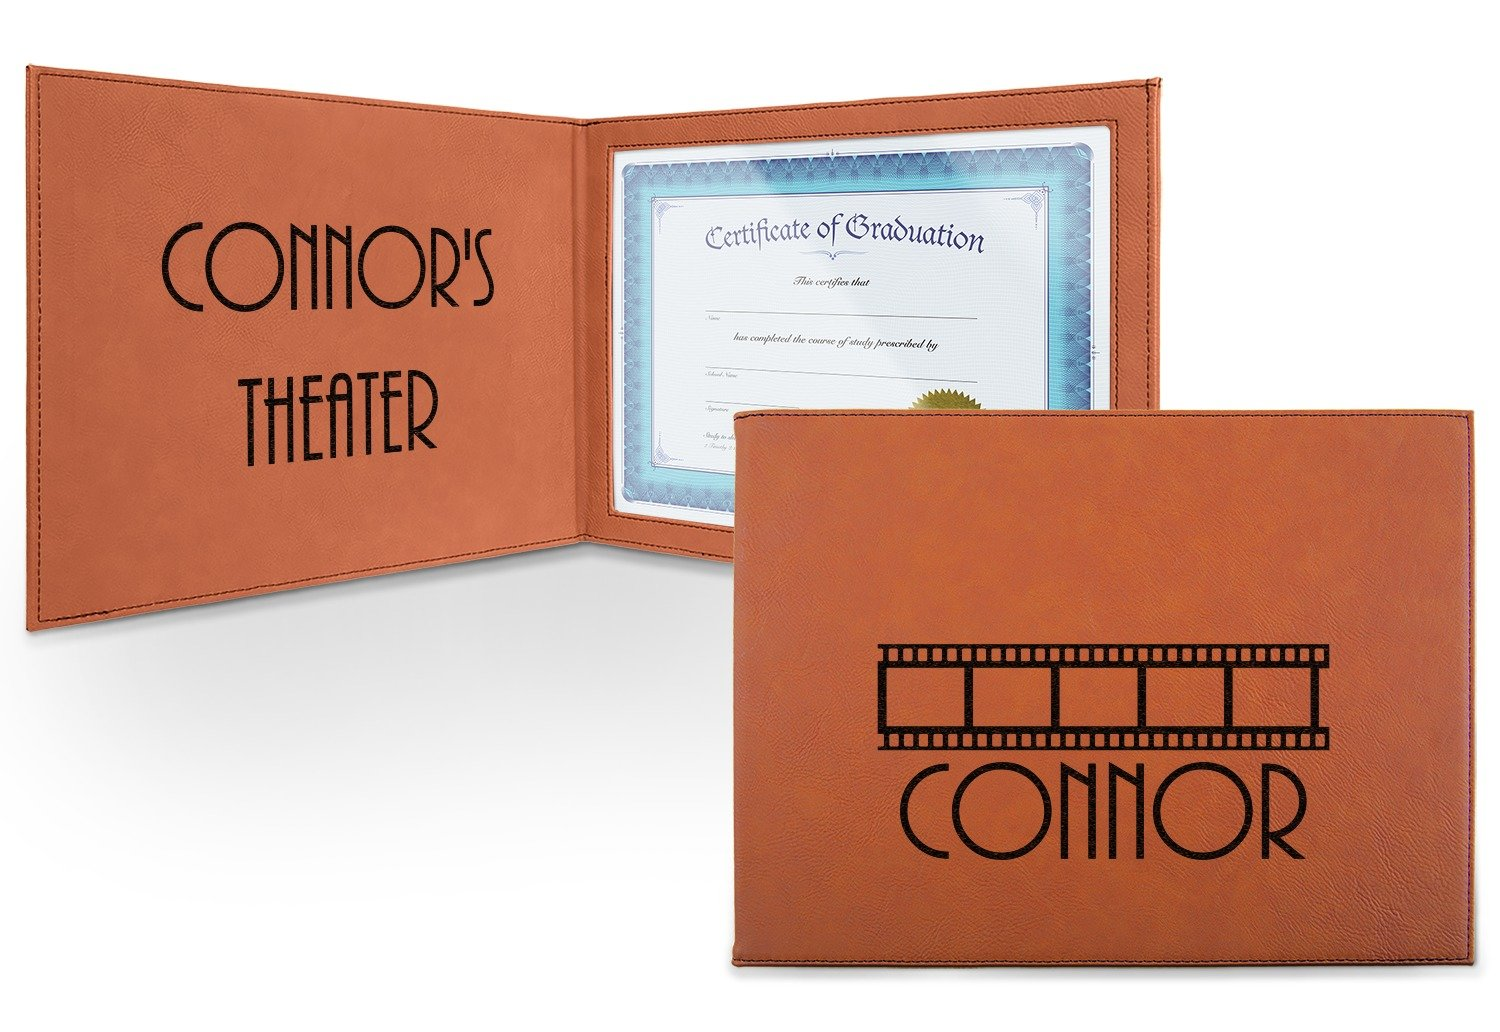 Movie Theater Leatherette Certificate Holder - Front and Inside (Personalized)